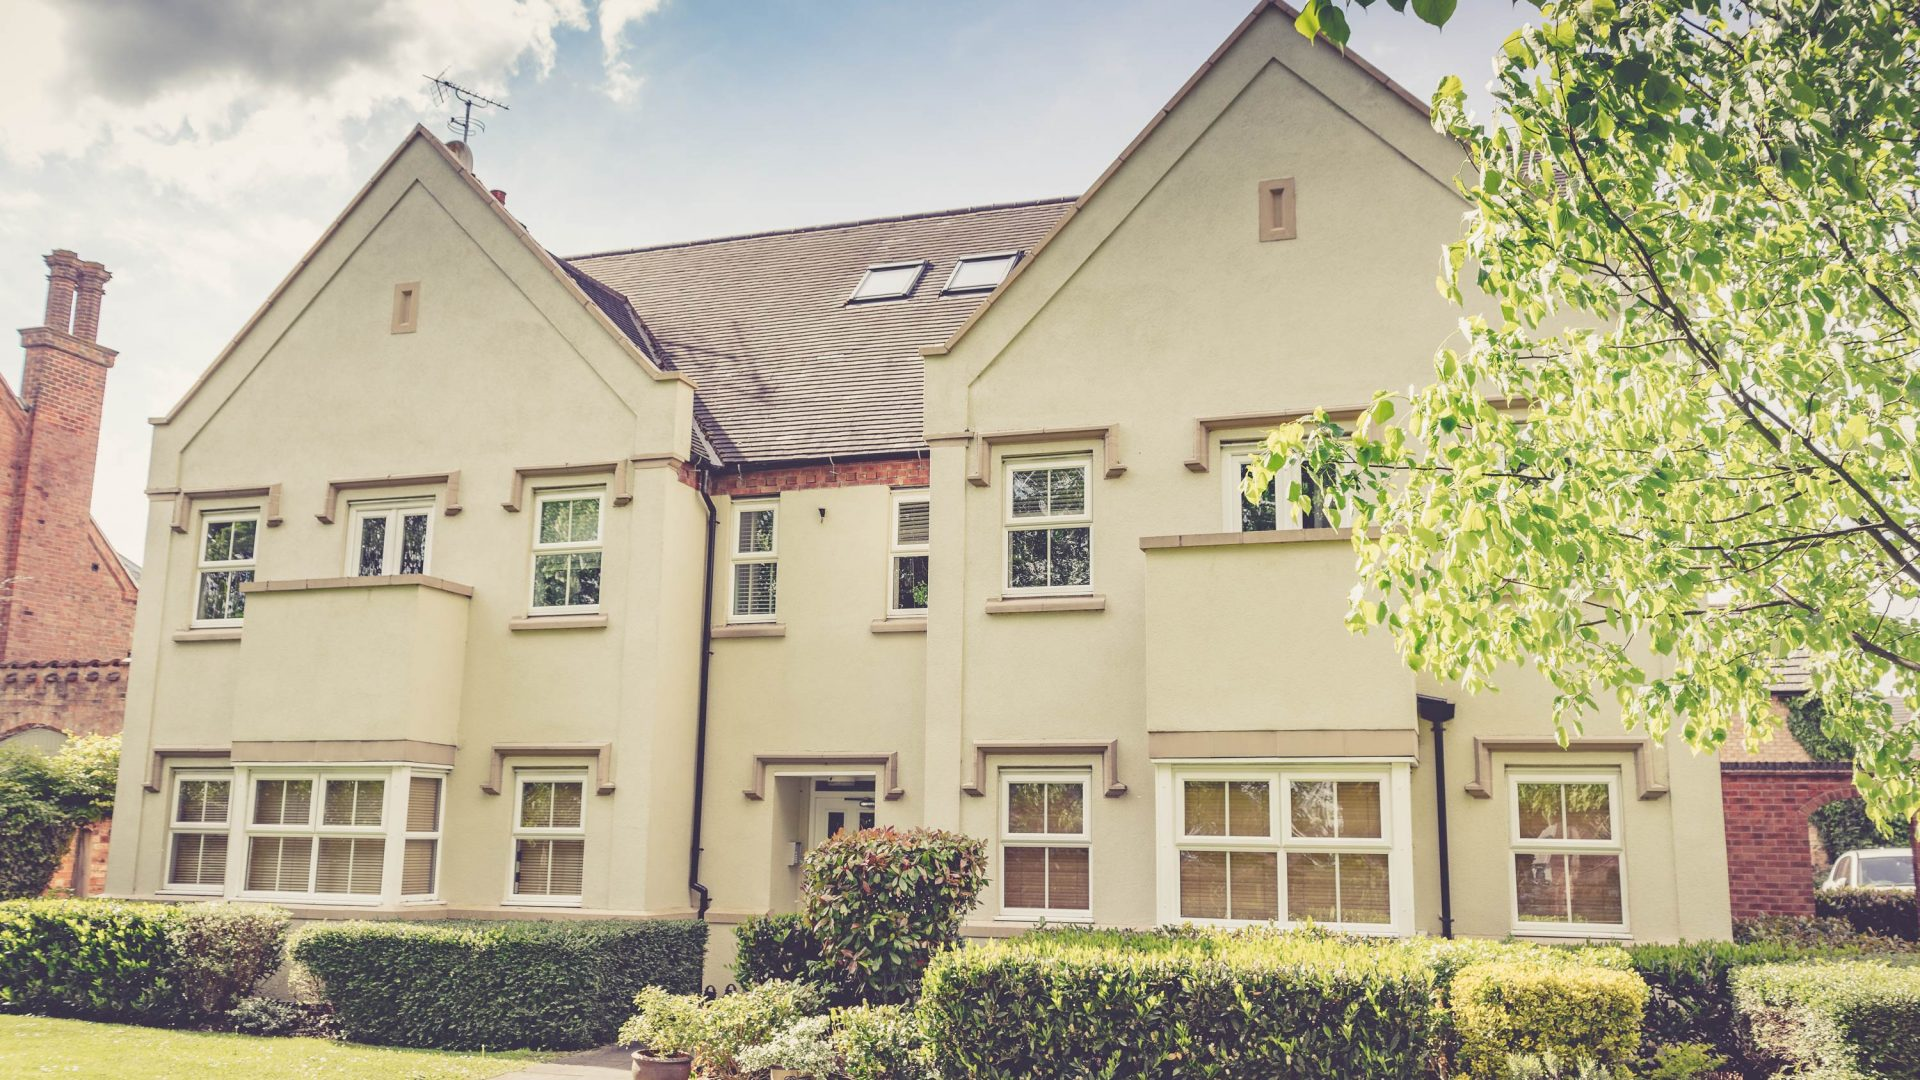 Coopers Close, Stratford-upon-Avon for sale with Mr and Mrs Clarke estate agent